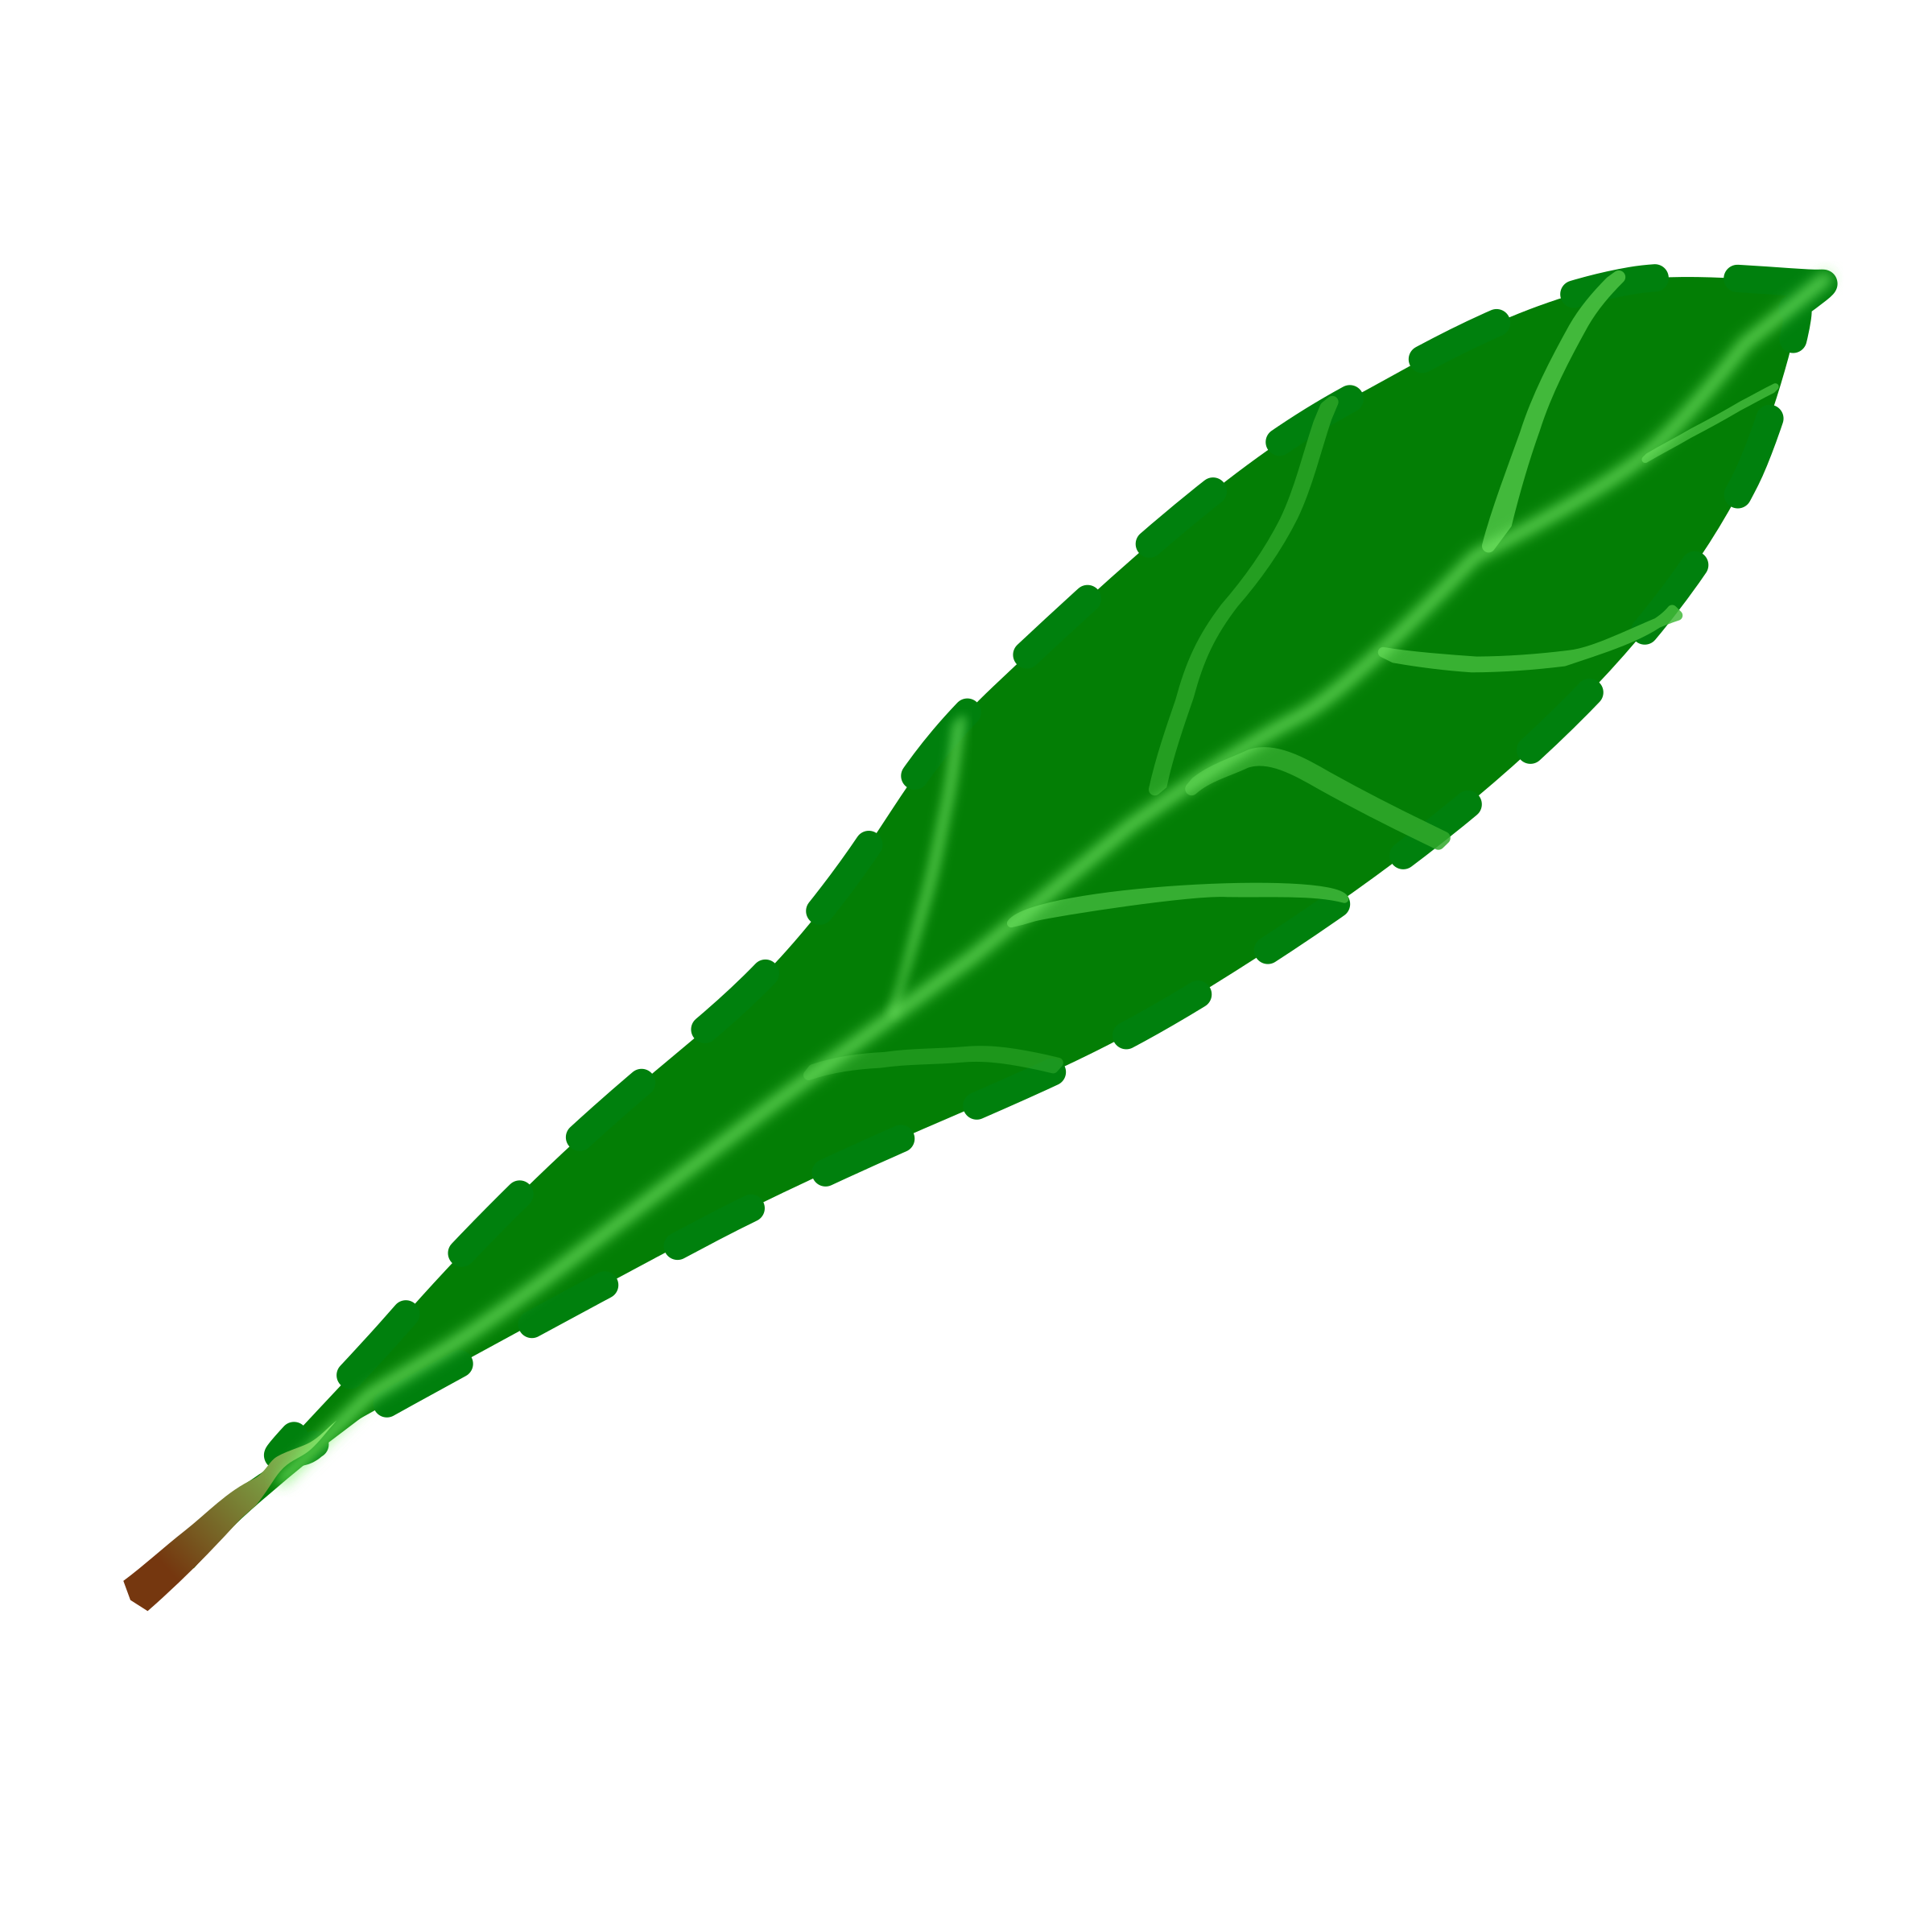 Clipart - Green leaf 2